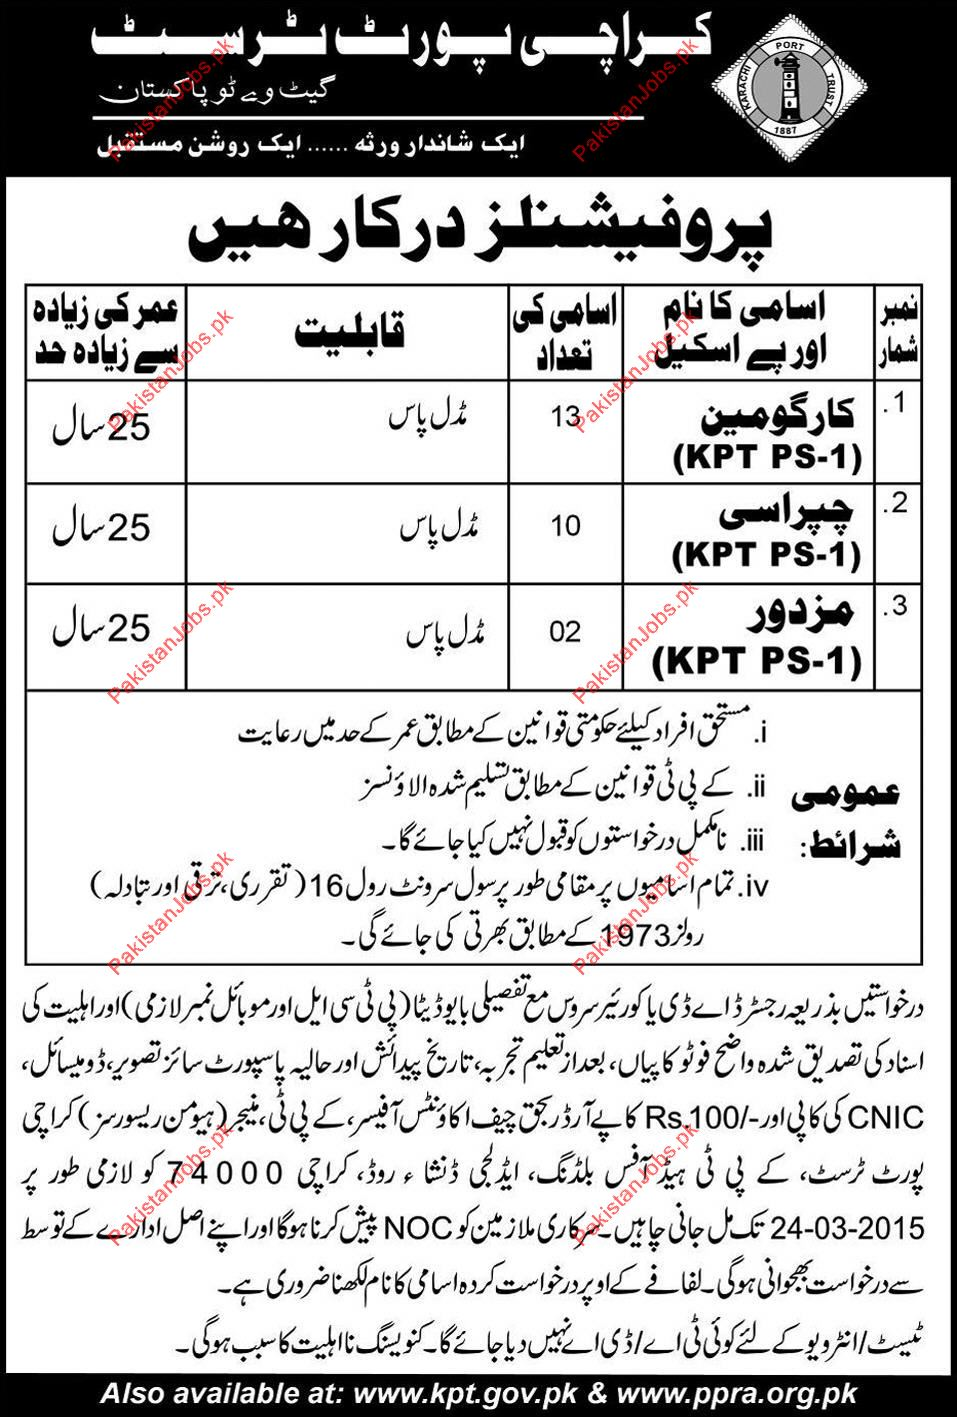 Wanted Cargoman, Peon & Labor For Karachi Port Trust 2019 Karachi